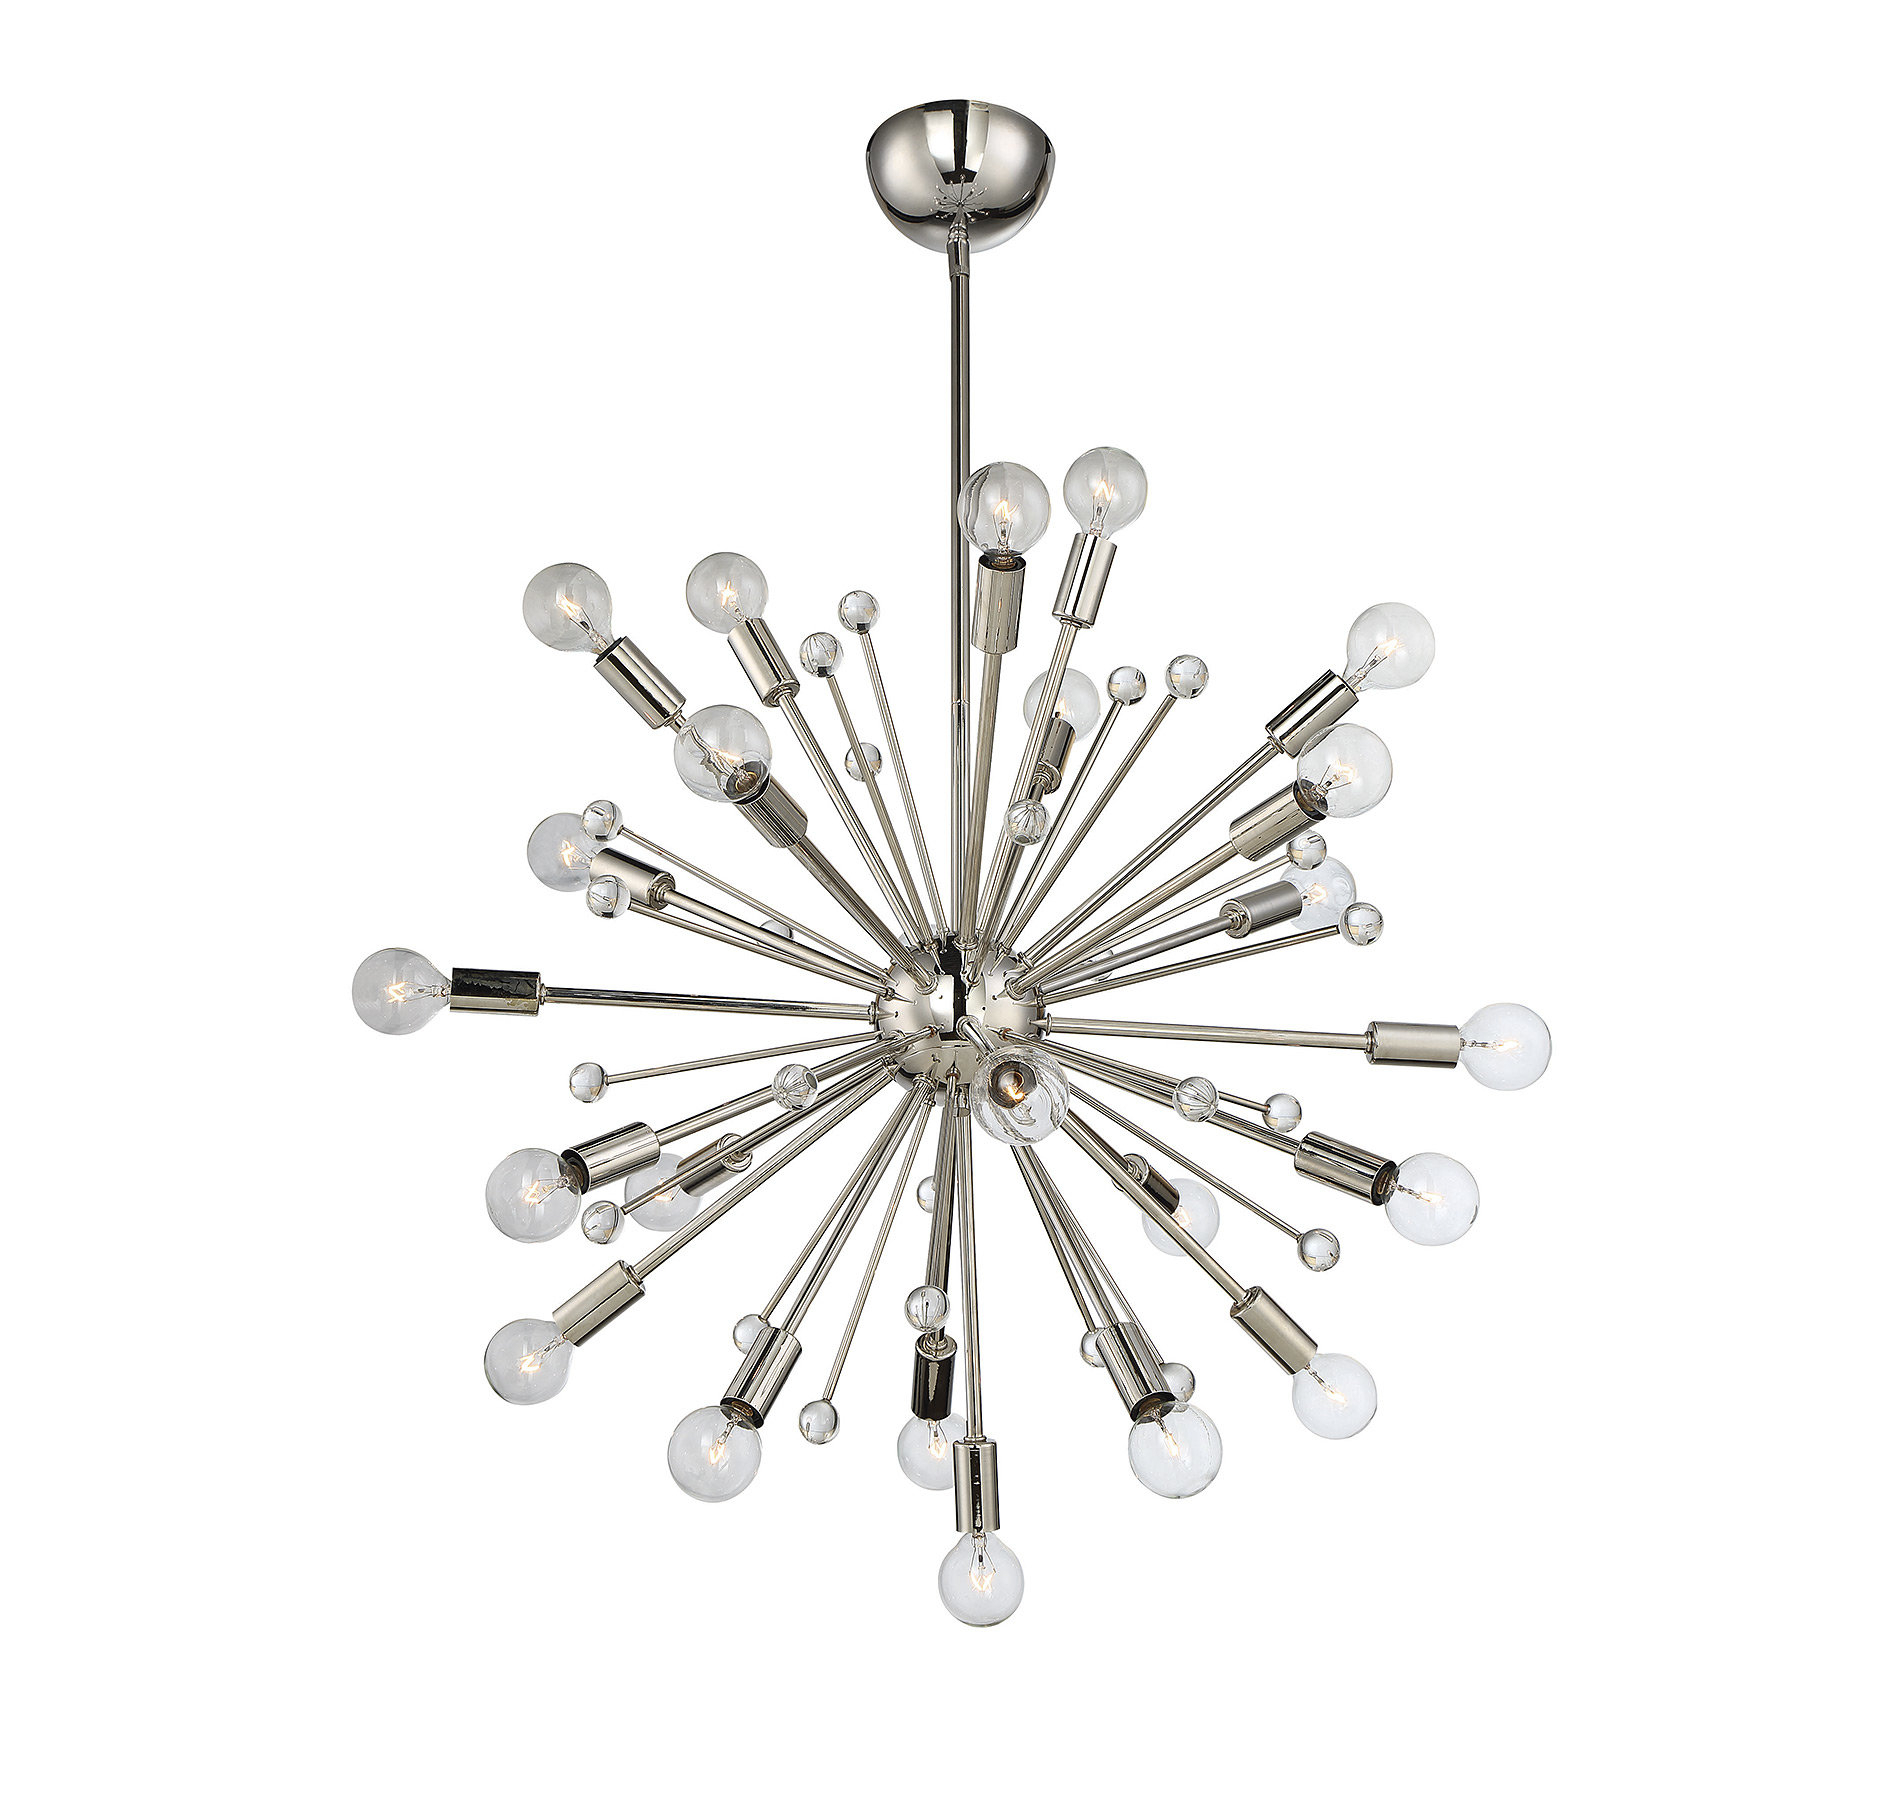 Cumbria 24-Light Sputnik Chandelier with regard to Asher 12-Light Sputnik Chandeliers (Image 11 of 30)